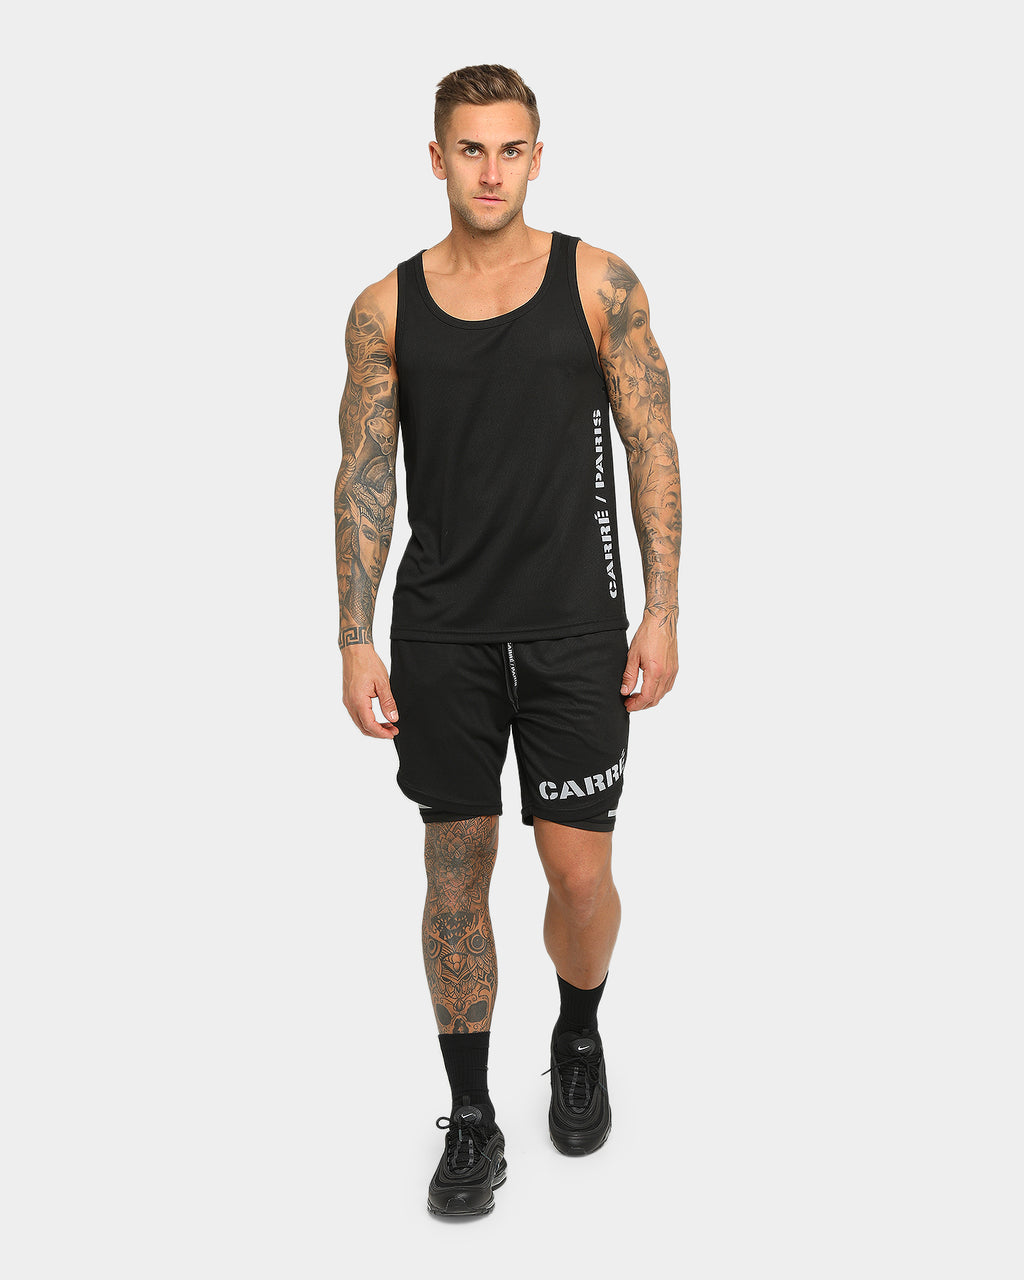 Carré Momentum Active Singlet Black/Reflective